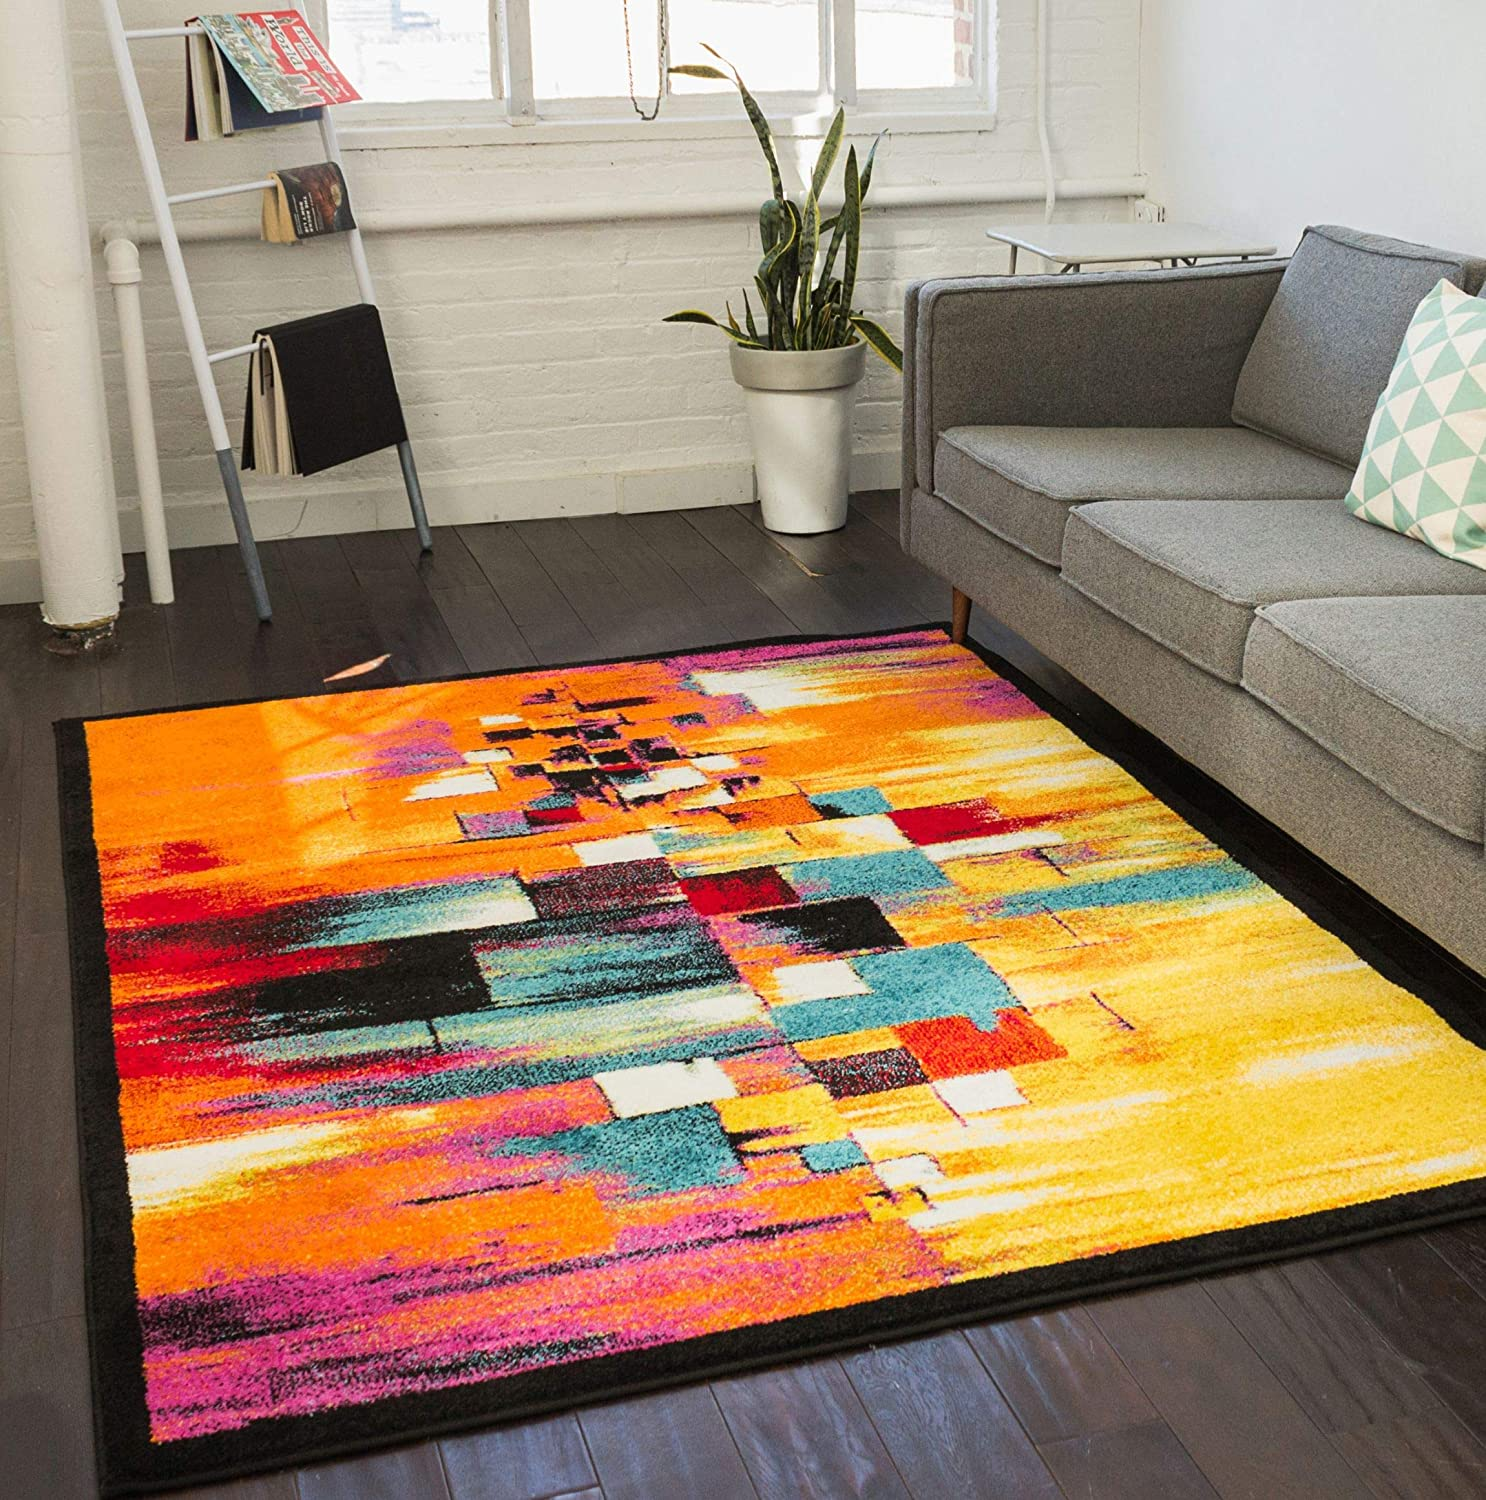 Aurora Multi Red Yellow Orange Swirl Lines Modern Geometric Abstract Brush Stroke Area Rug 2x4 ( 1'8 x 2'7 ) Easy Clean Stain Kitchen Entryway Doormat Contemporary Painting Art Stripe Thick Plush Well Woven FBA_IHS-D-VI41-2031